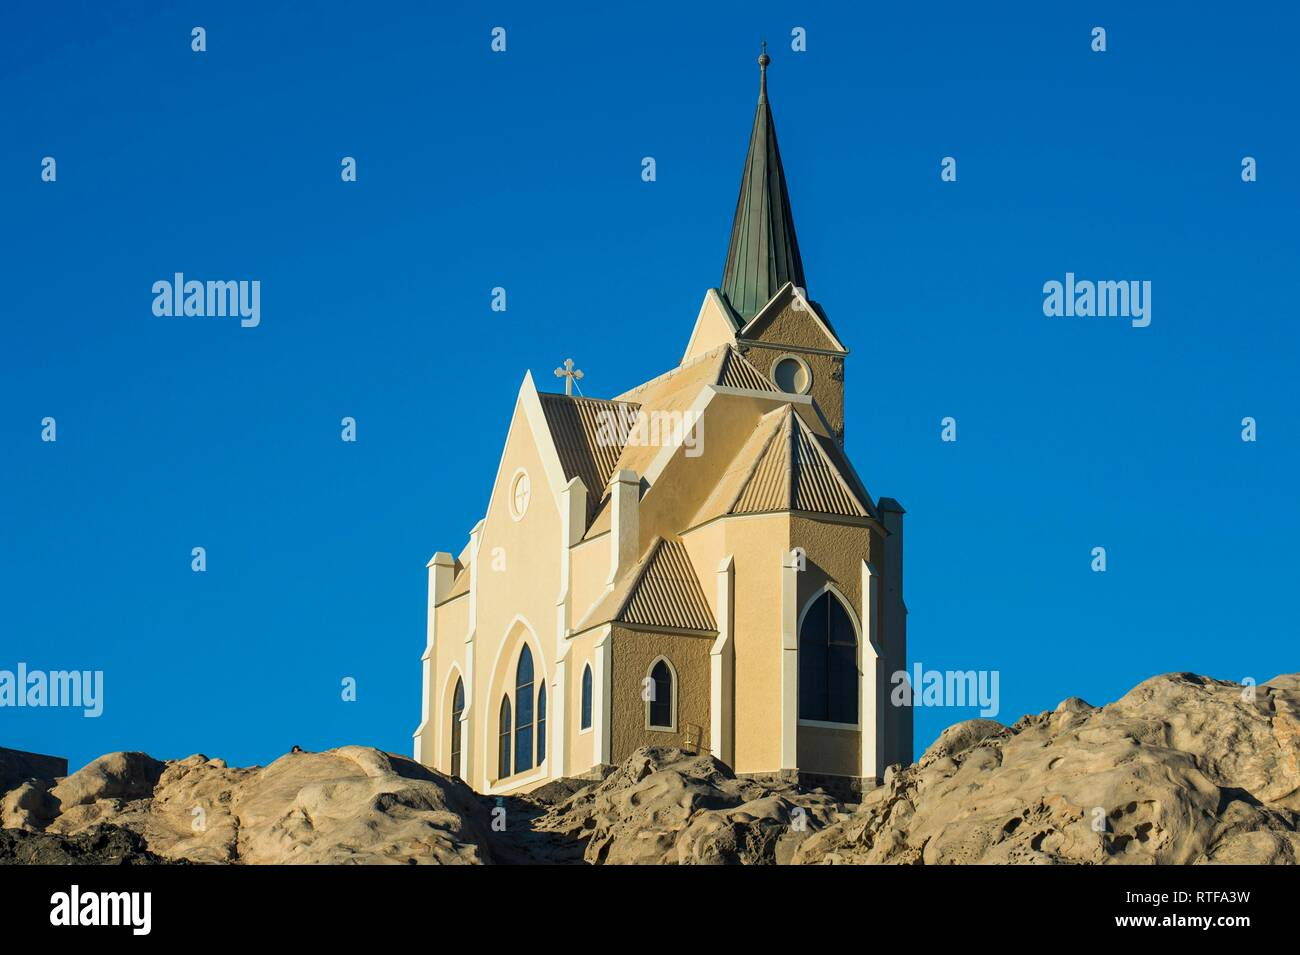 Colonial rock church, Lüderitz, Namibia - Stock Image